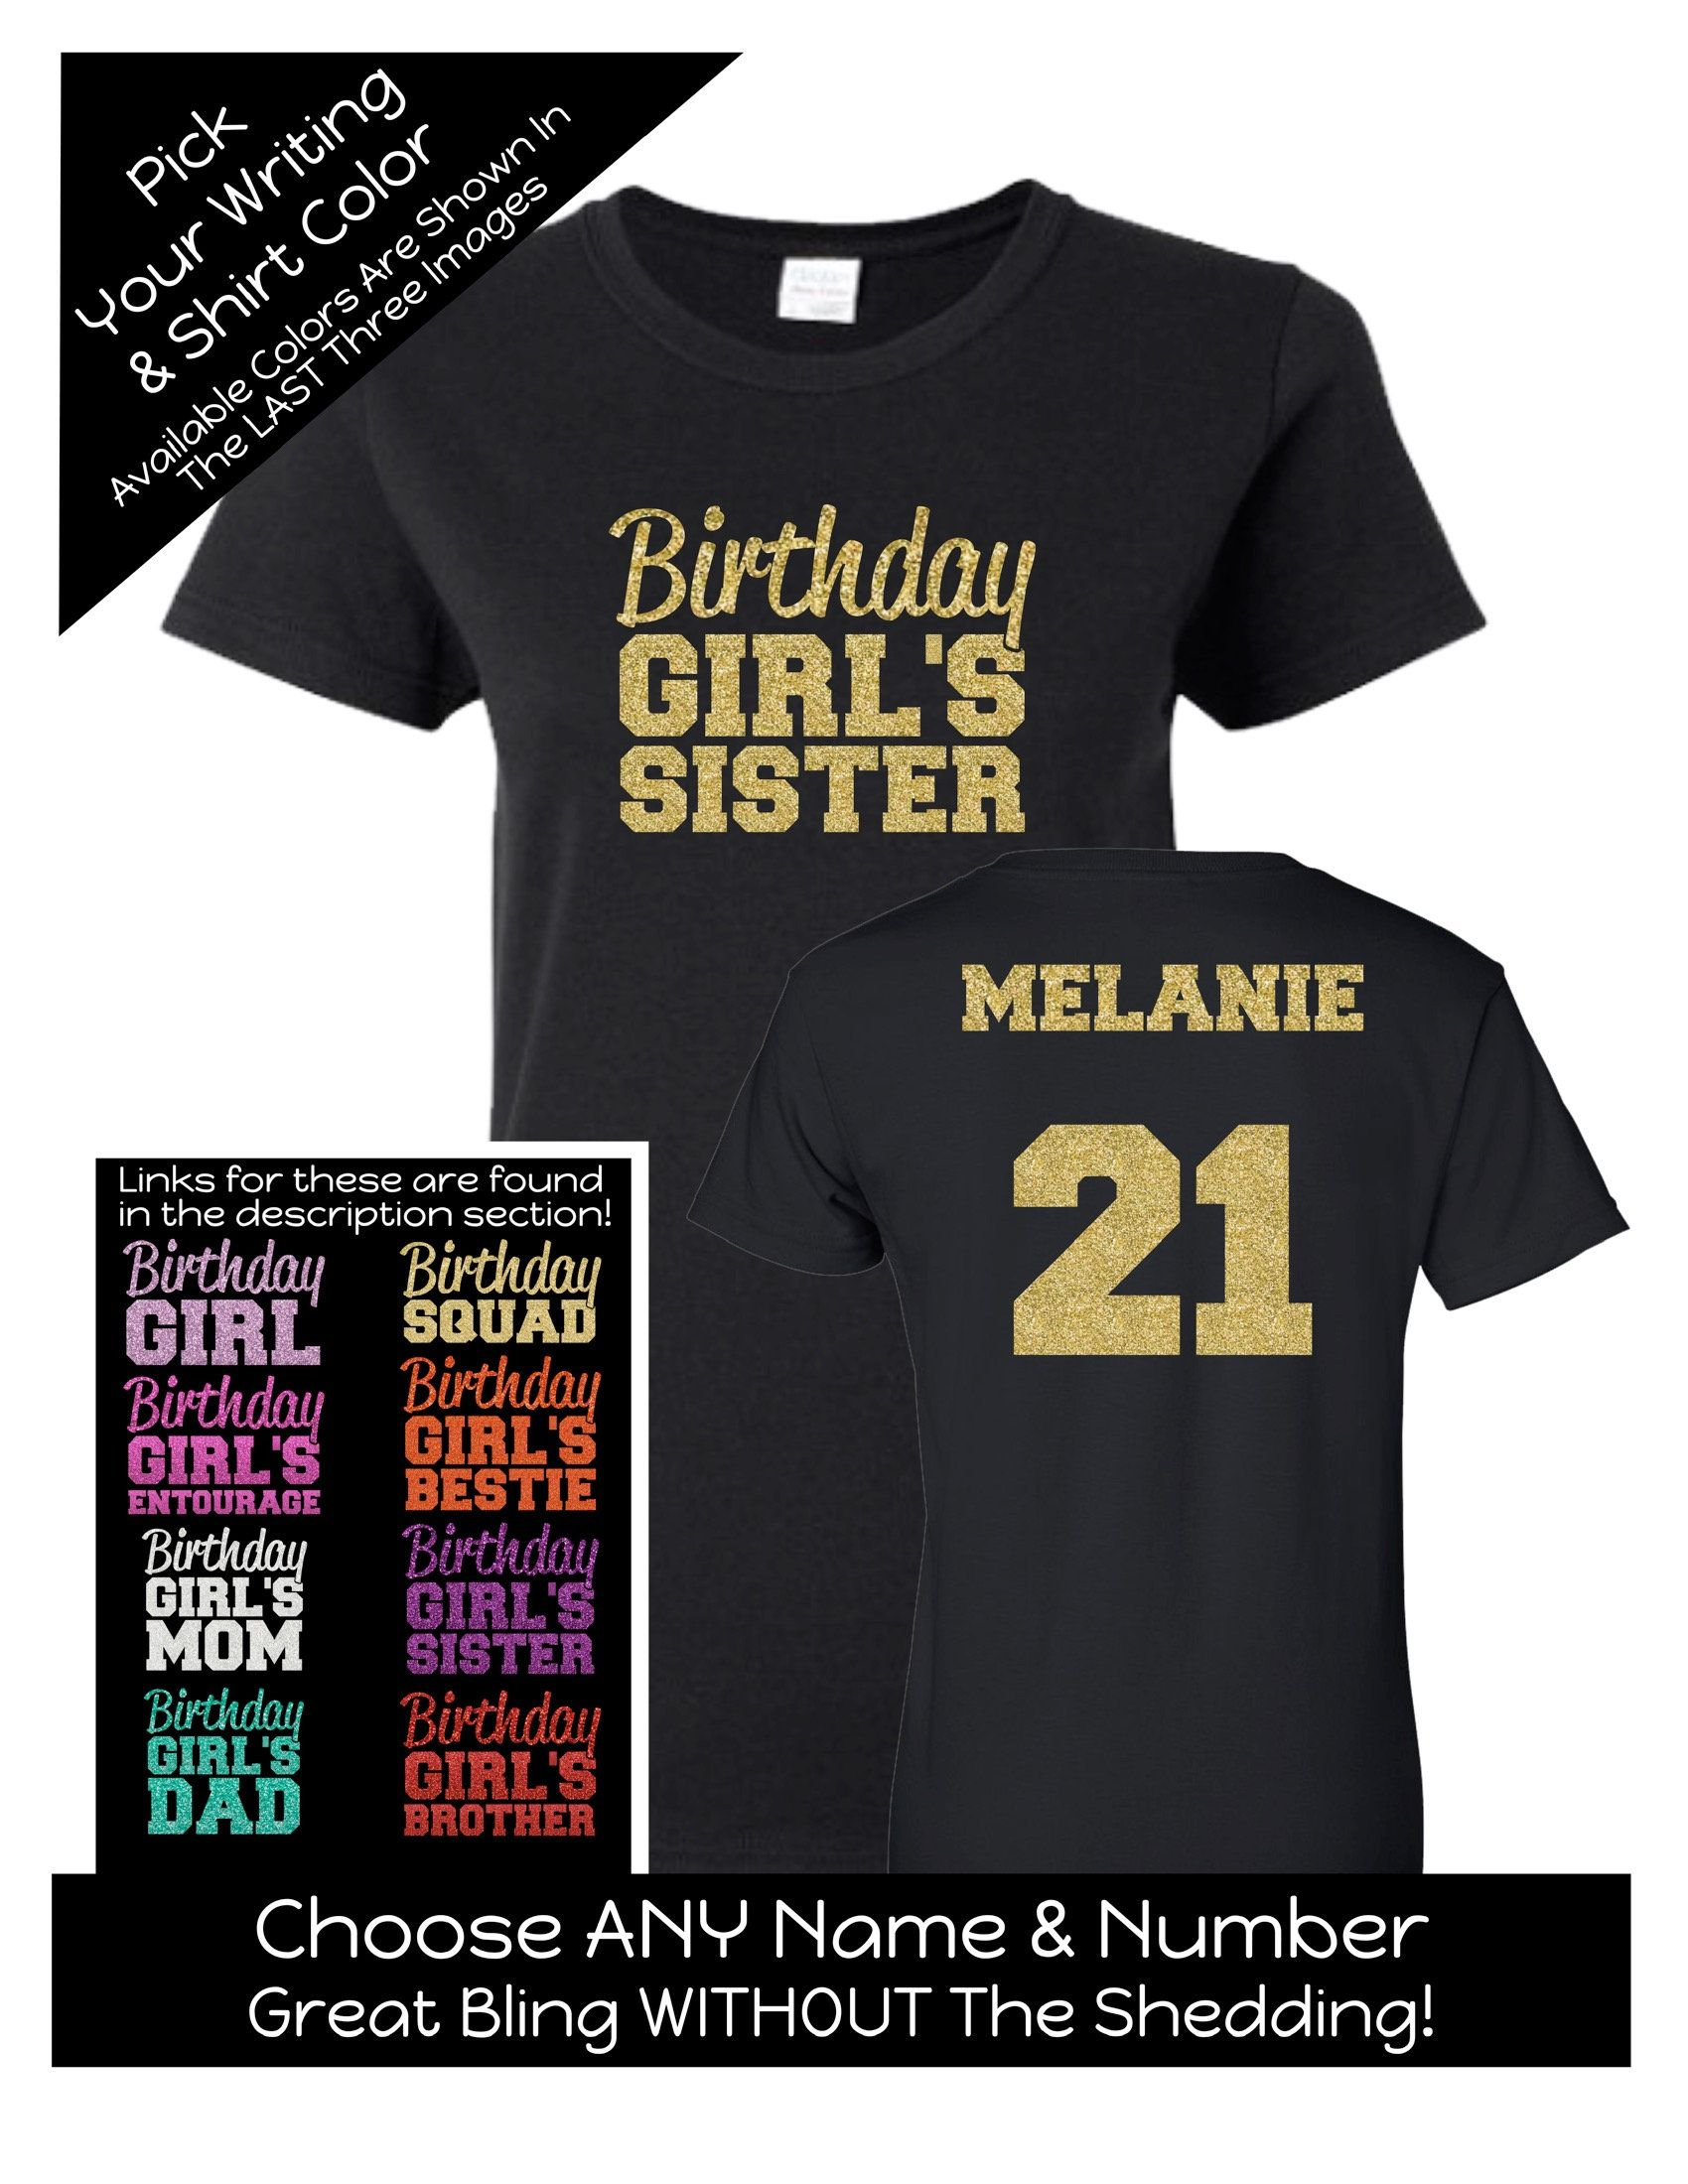 e92855ae1 Impact Birthday Girl's Sister - Personalize the Name, Age and Colors -  Birthday Party Matching Shirts by MagicalMemoriesbyJ on Etsy